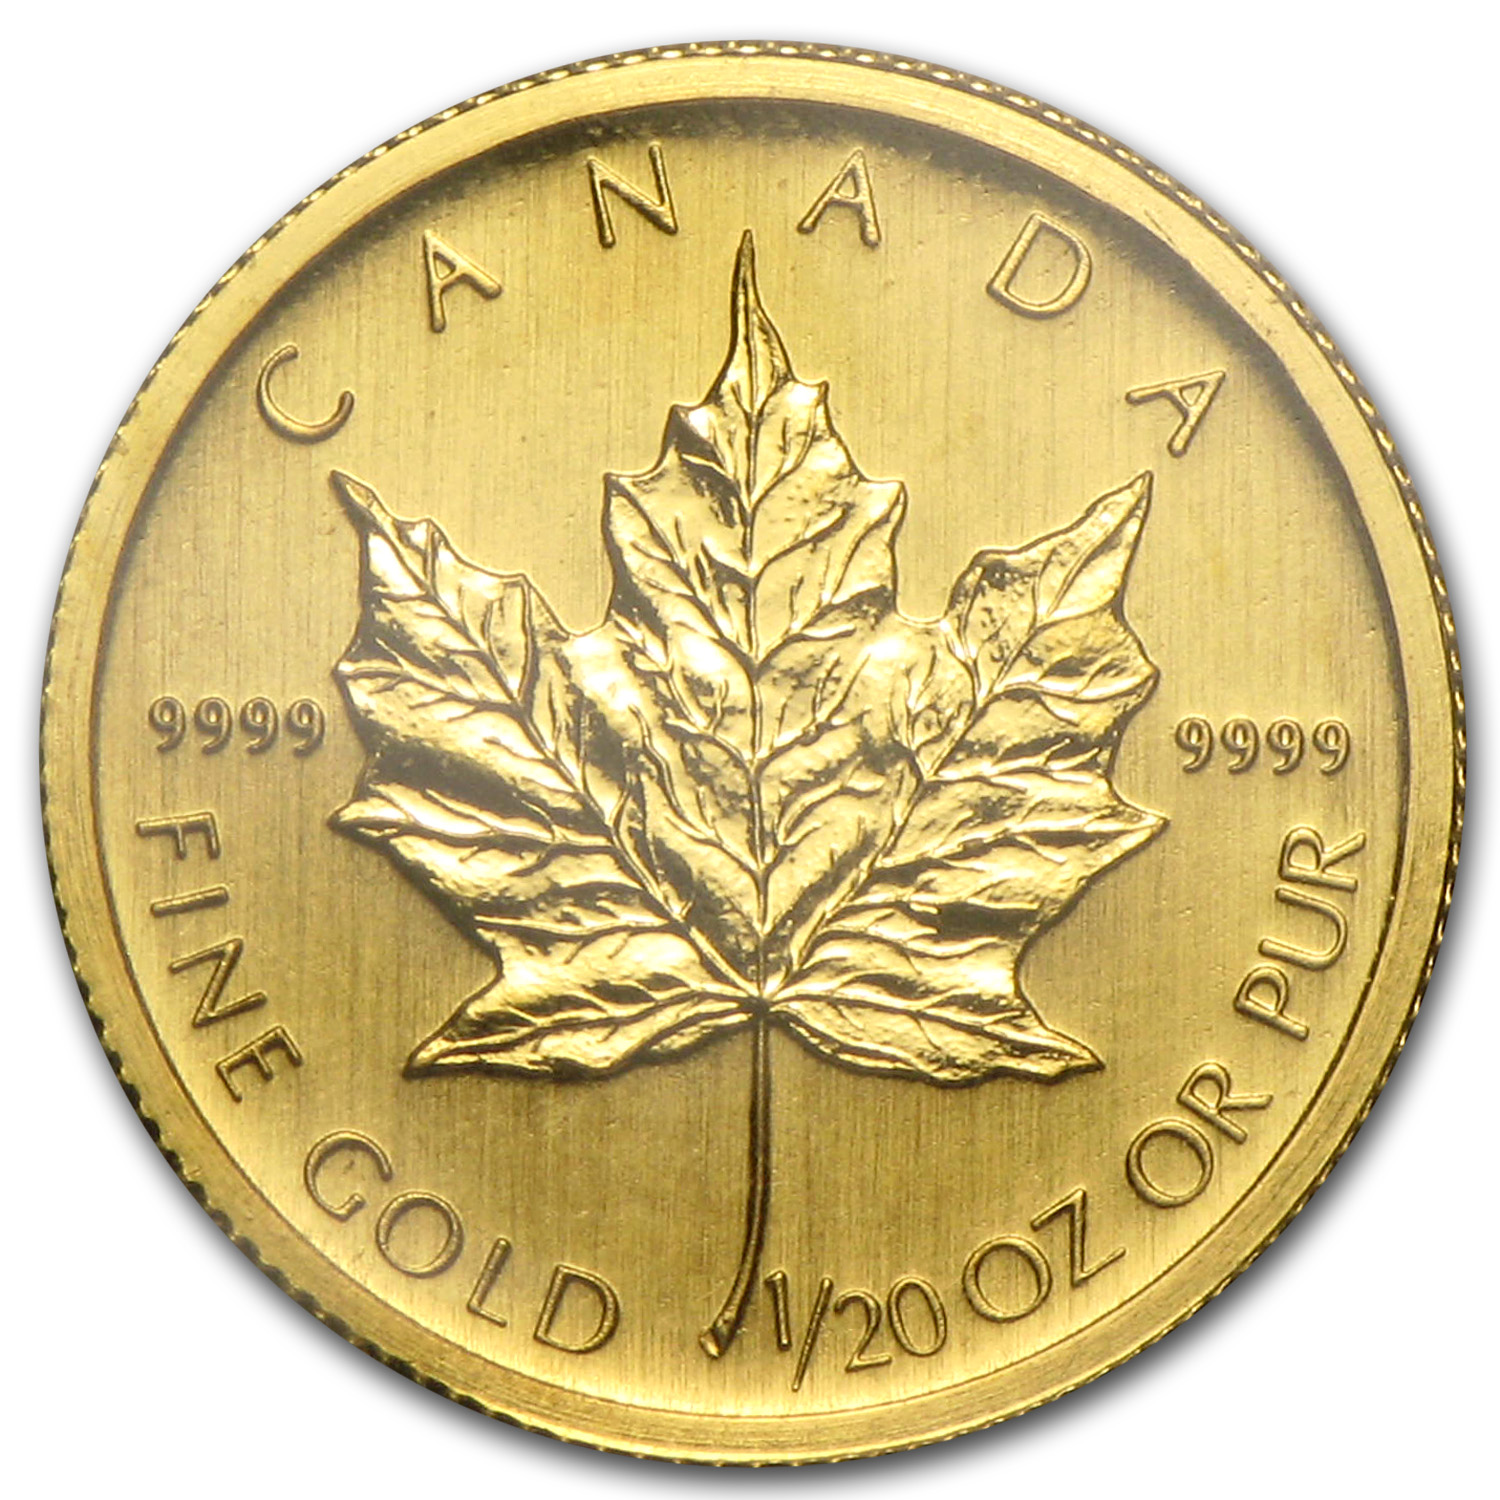 2008 1/20 oz Gold Canadian Maple Leaf